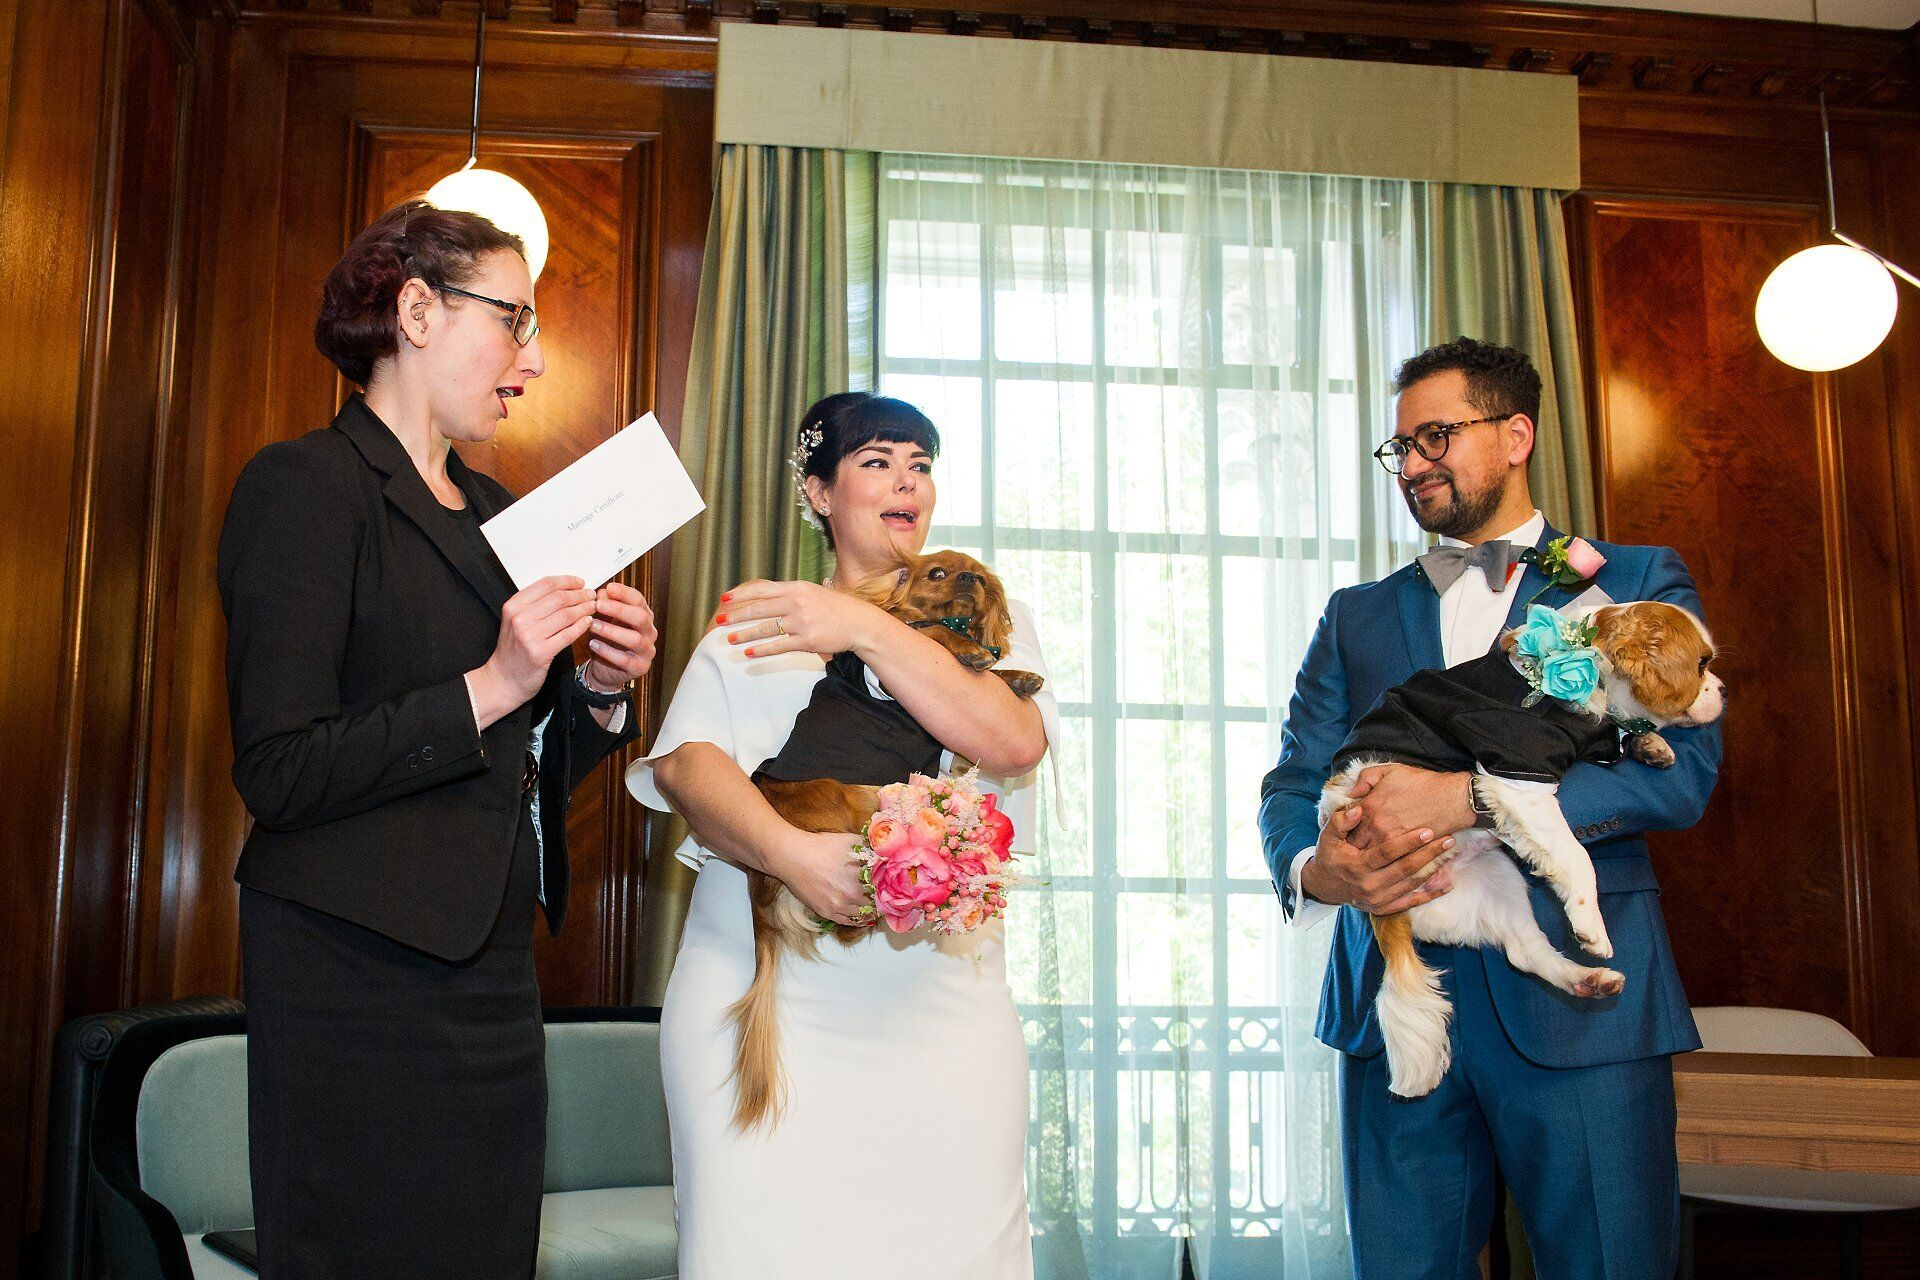 westminster register office registrar hands marriage certificate to the bride and groom, each holding a cavalier king charles spaniel puppy dog (dog friendly wedding venue)